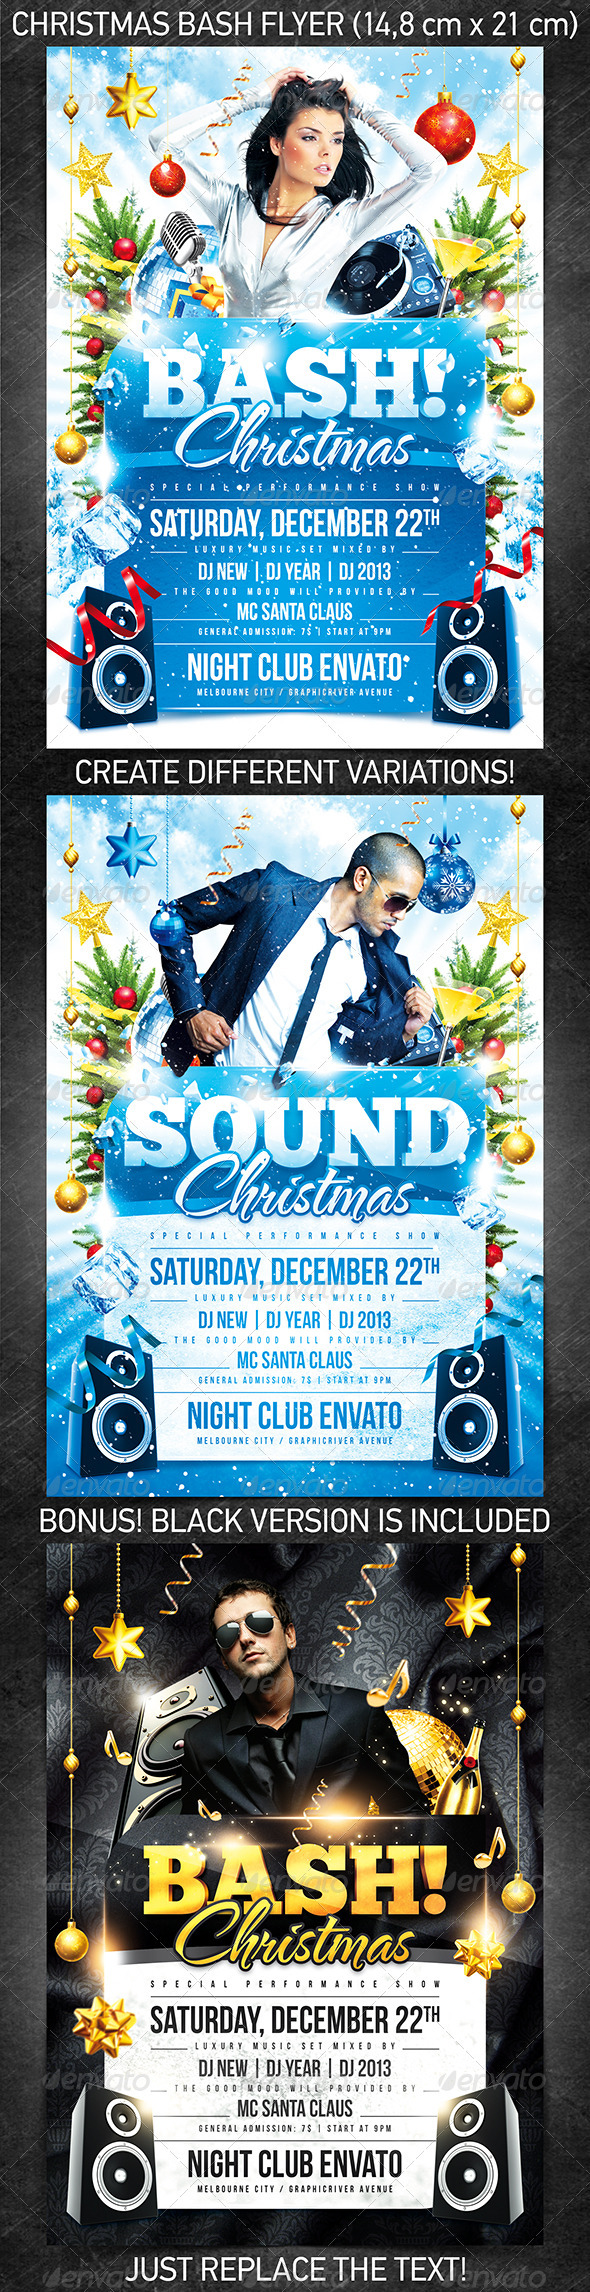 Christmas Bash Flyer Template - Holidays Events